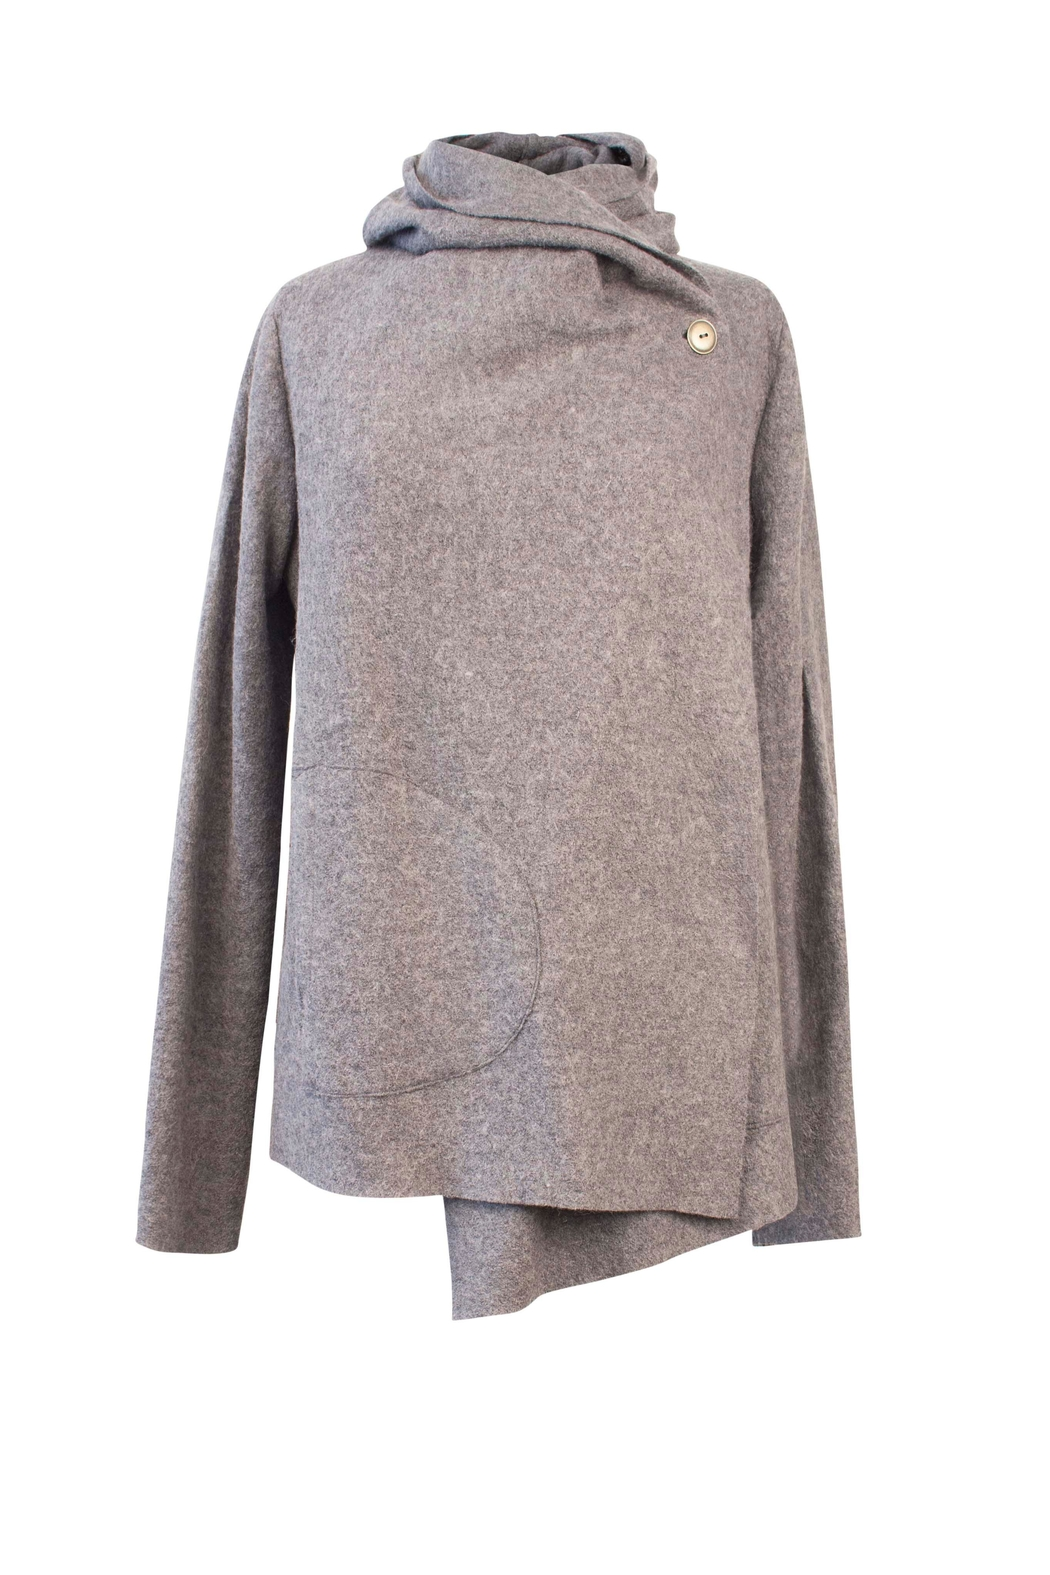 Helena Jones Wool Hooded Top - Main Image